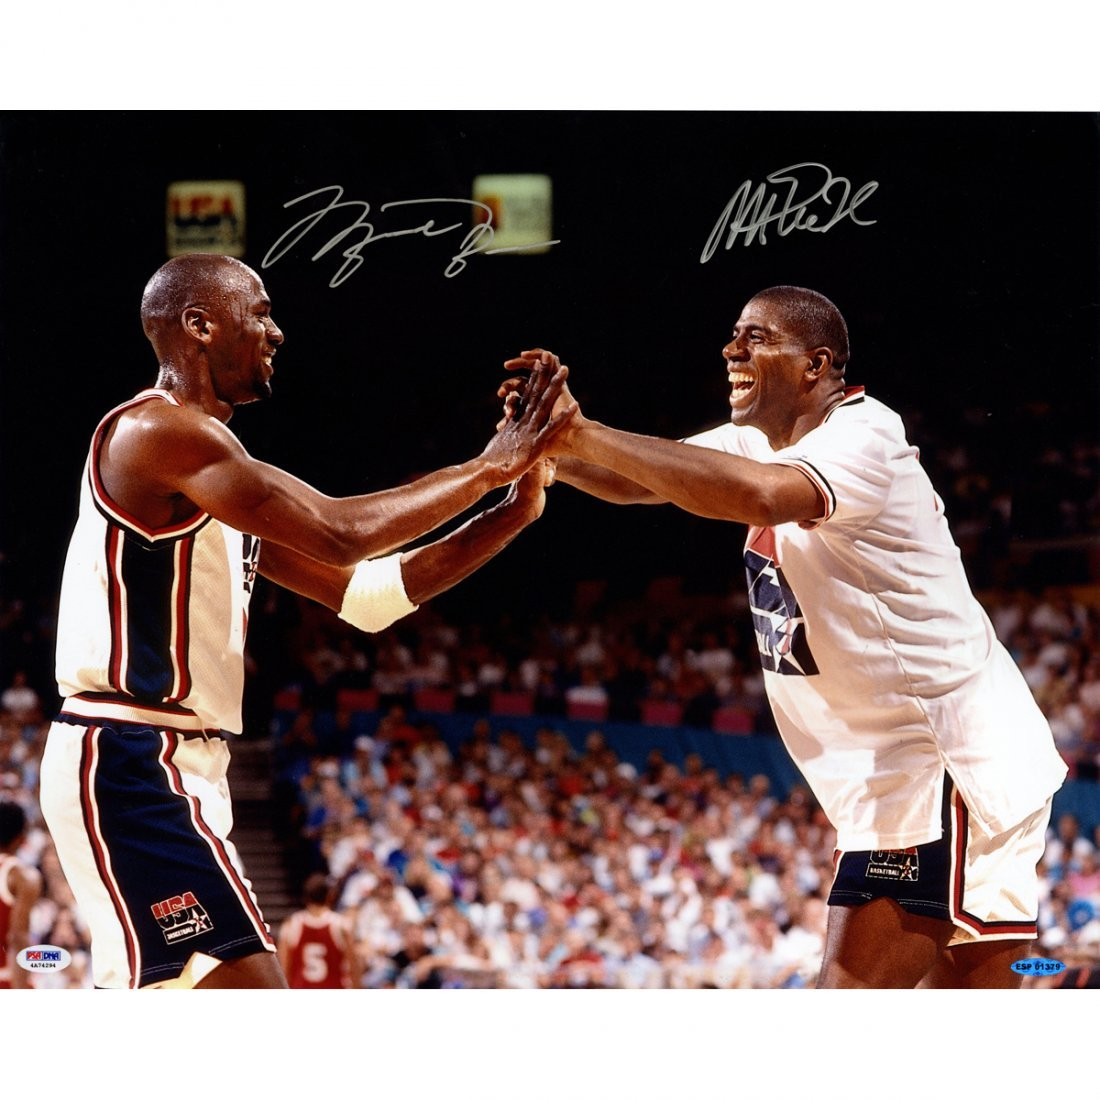 Michael Jordan / Magic Johnson Dual Signed Celebartion